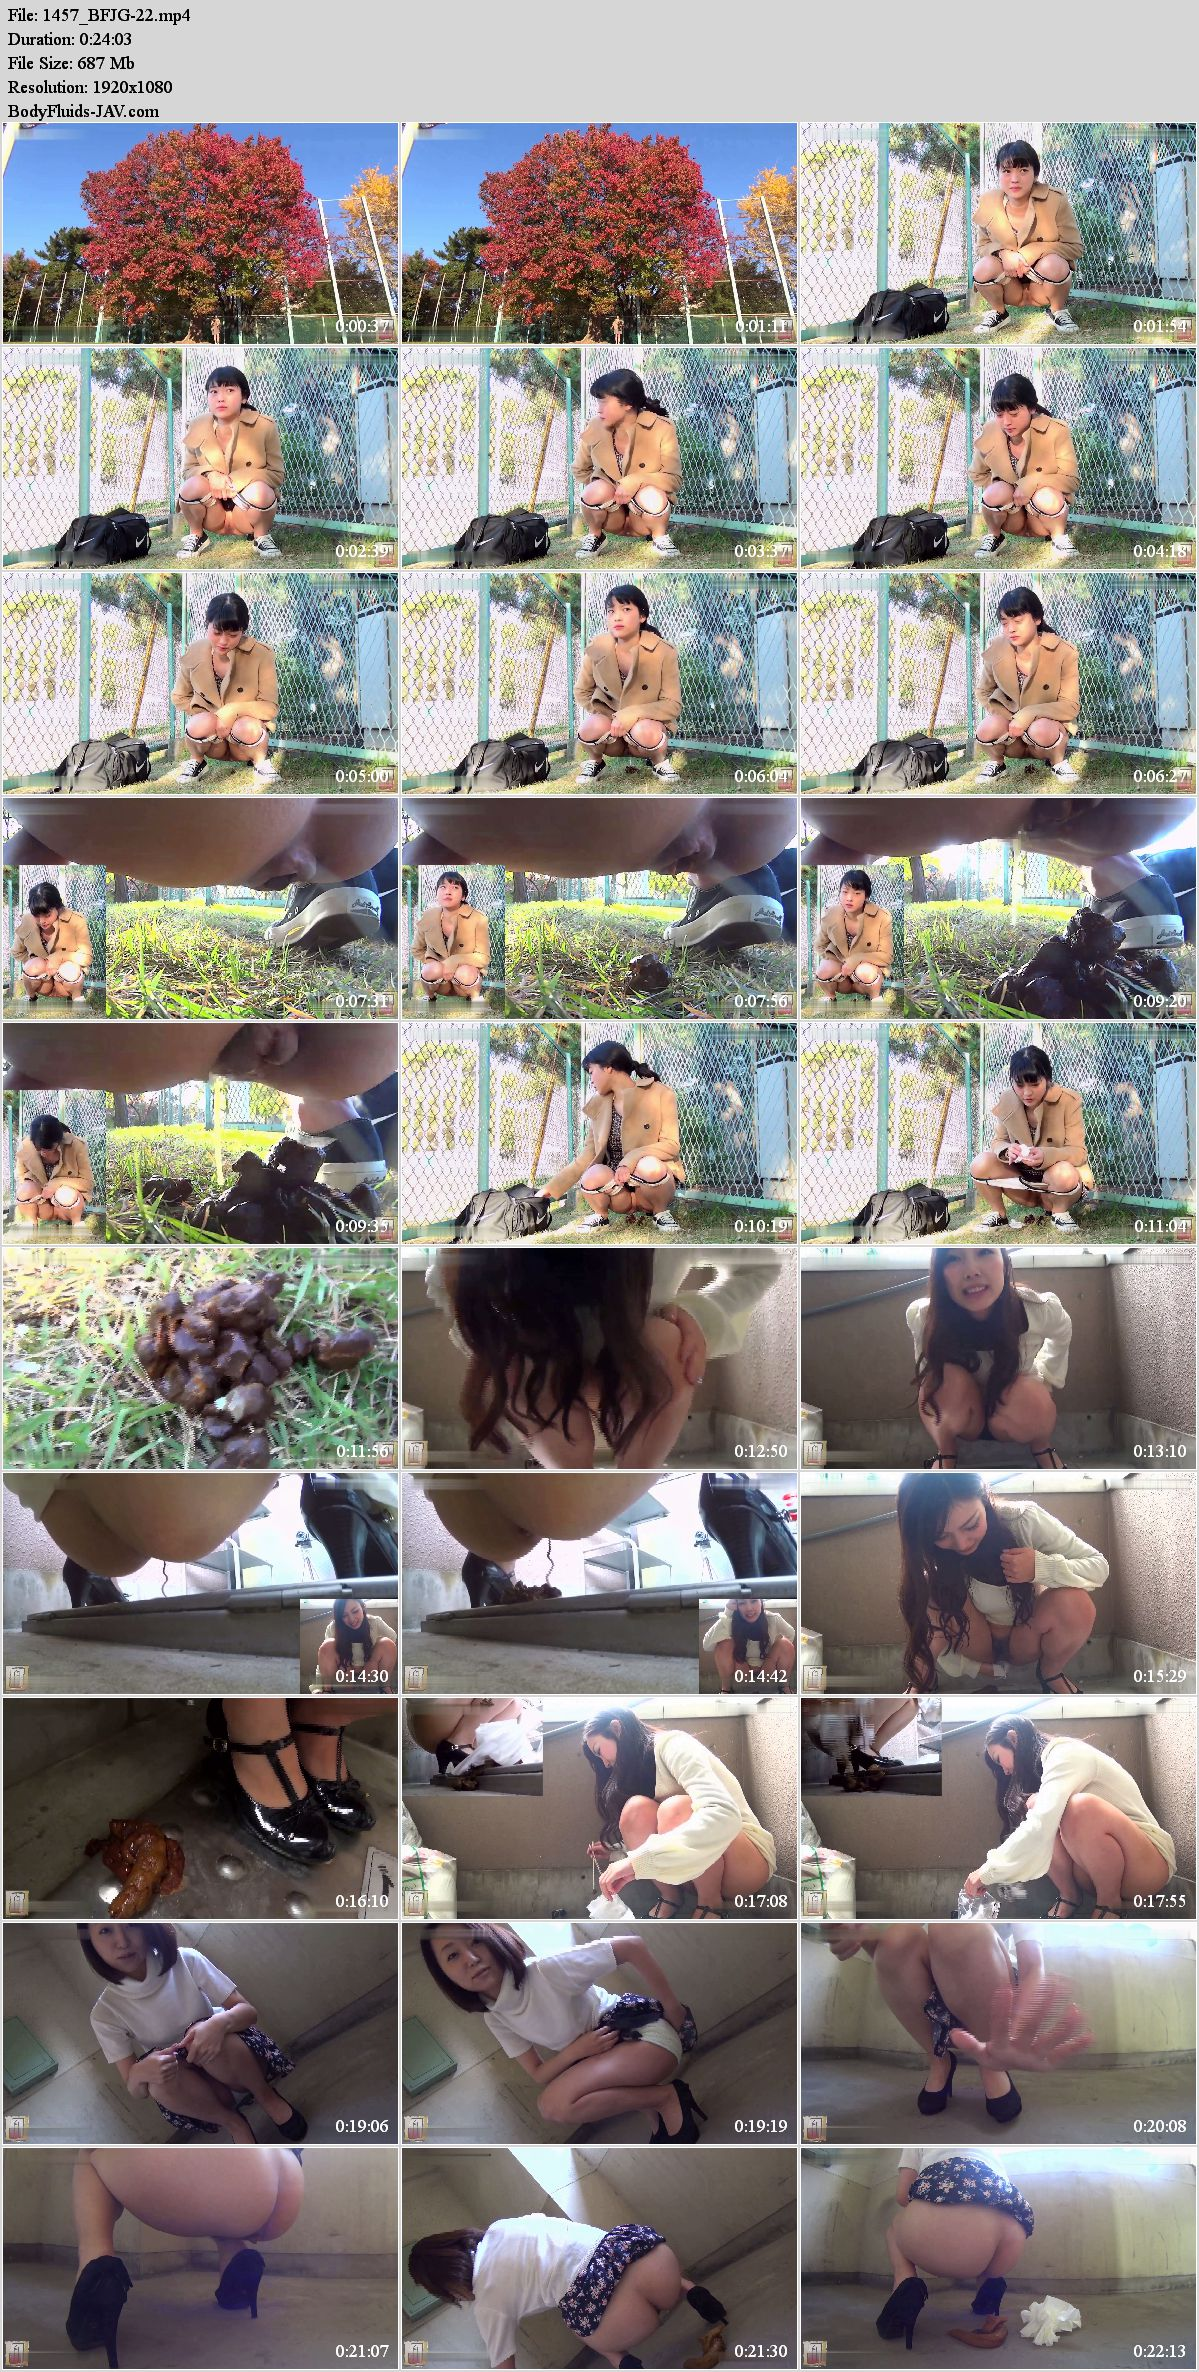 BFJG-22 Girls were filming their own defecation in public places. (HD 1080p)